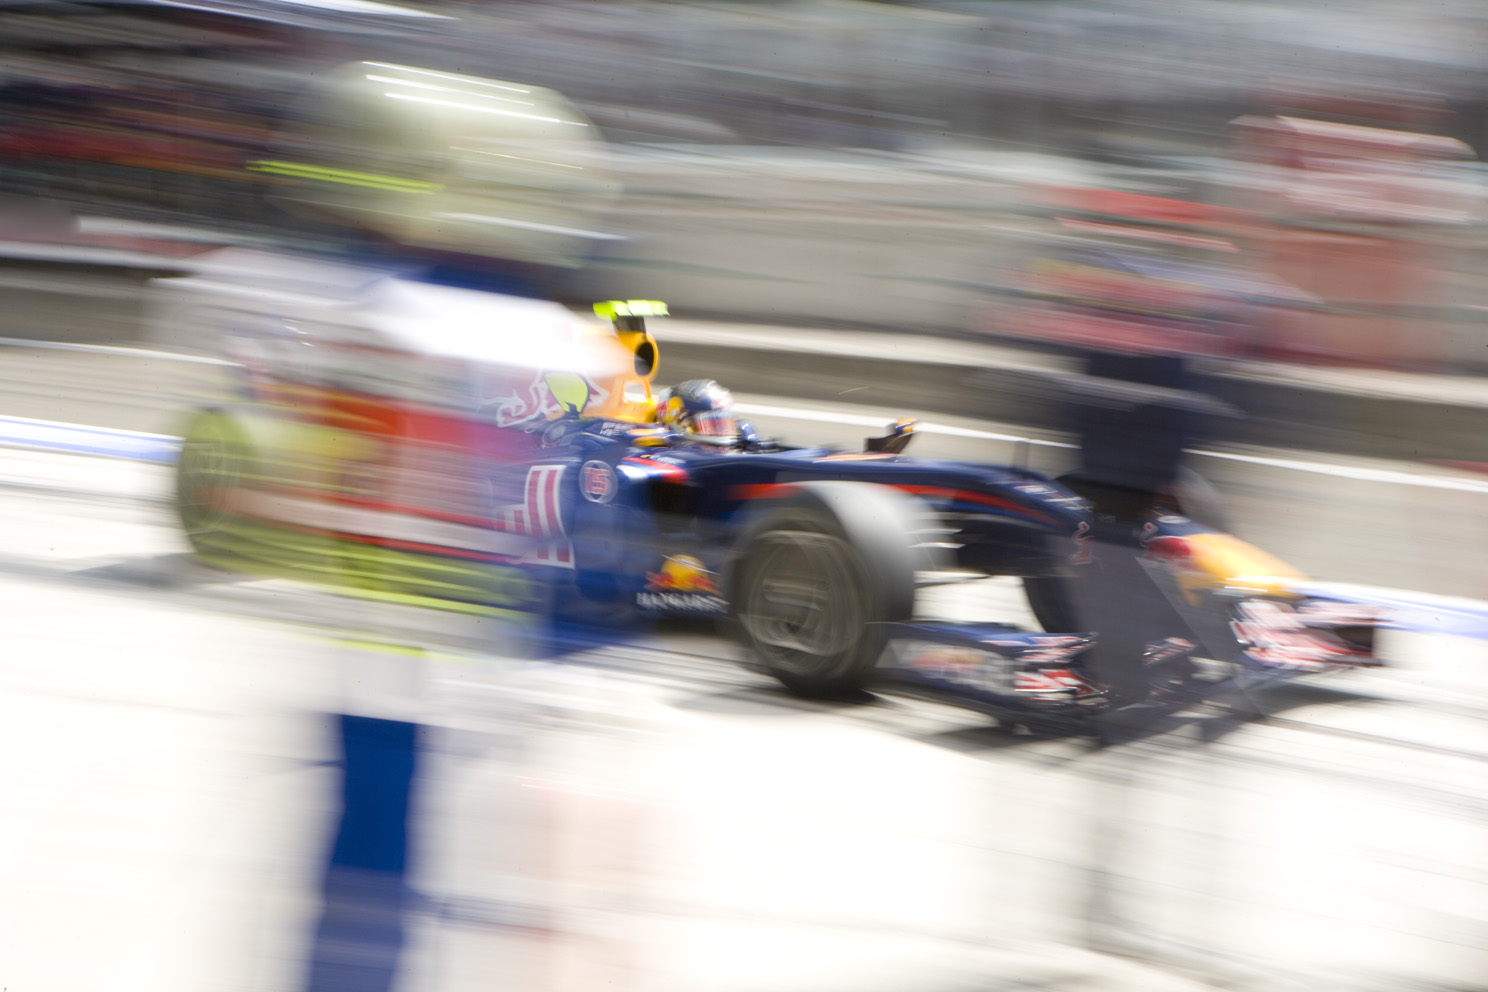 Sebastian Vettel zooms though the pitlane at the Hungarin Grand Prix